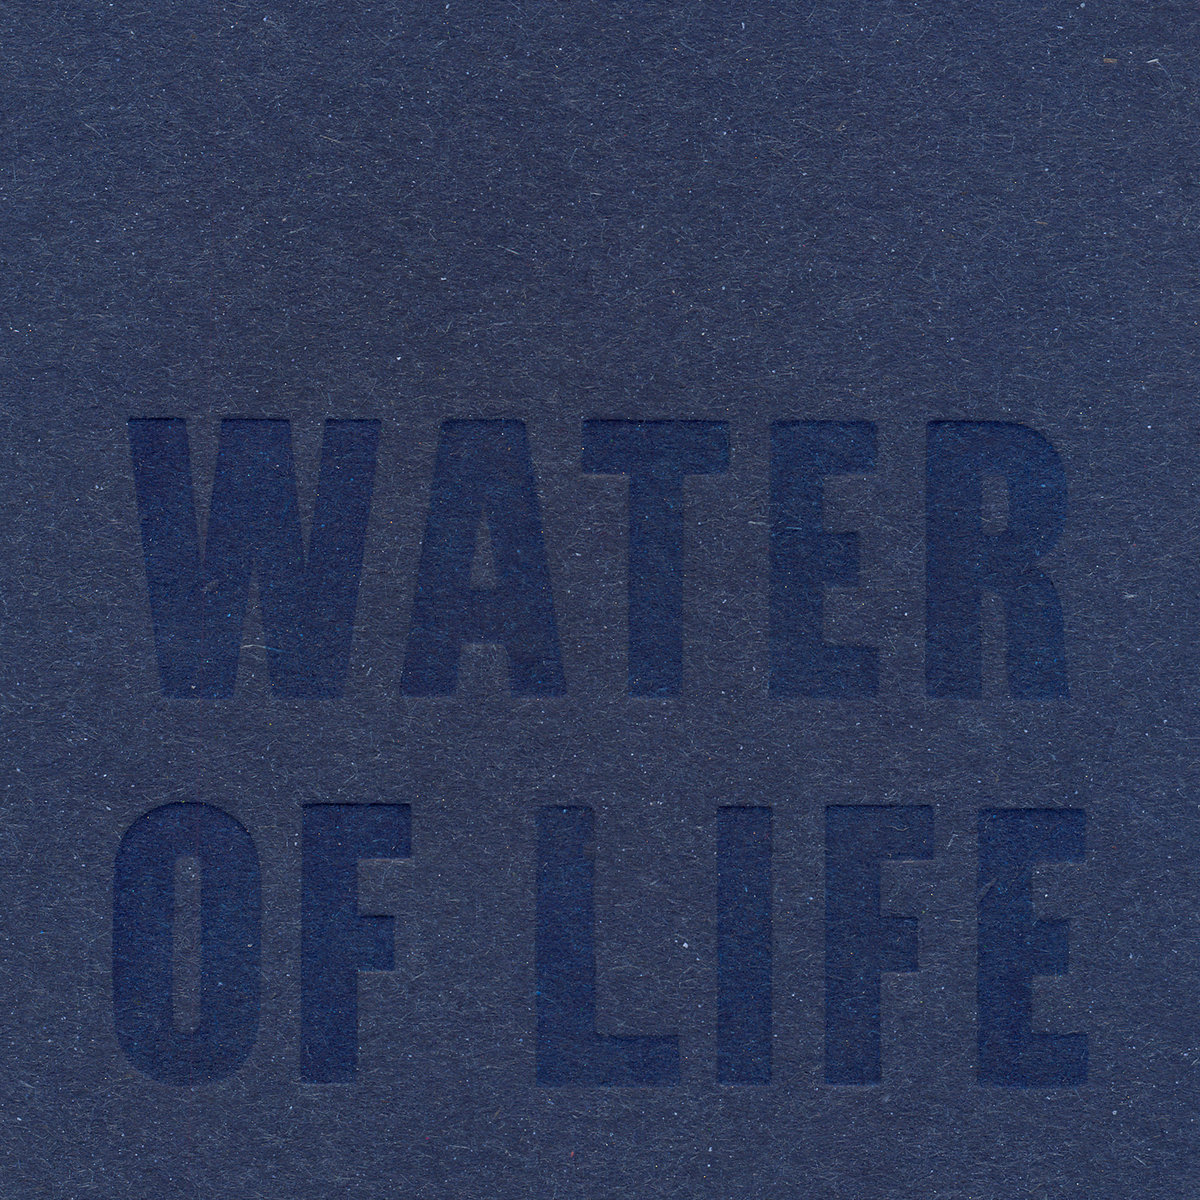 water of life 7 prints and essays water of life by water of life